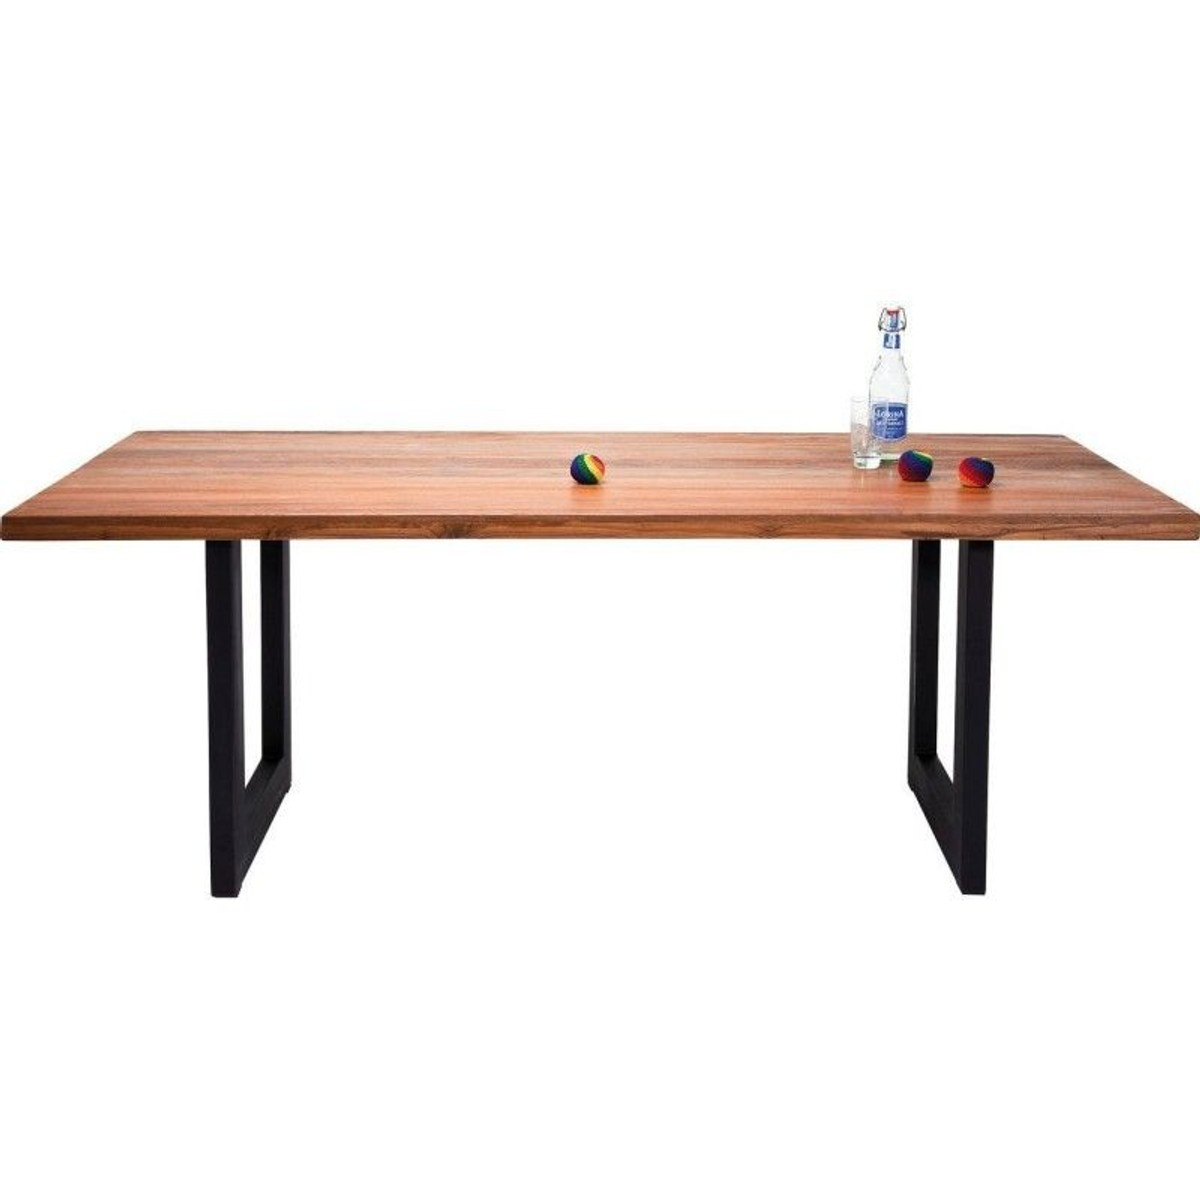 200x90cm pers Factory Design Taille8 Table Kare kuTZOPXi